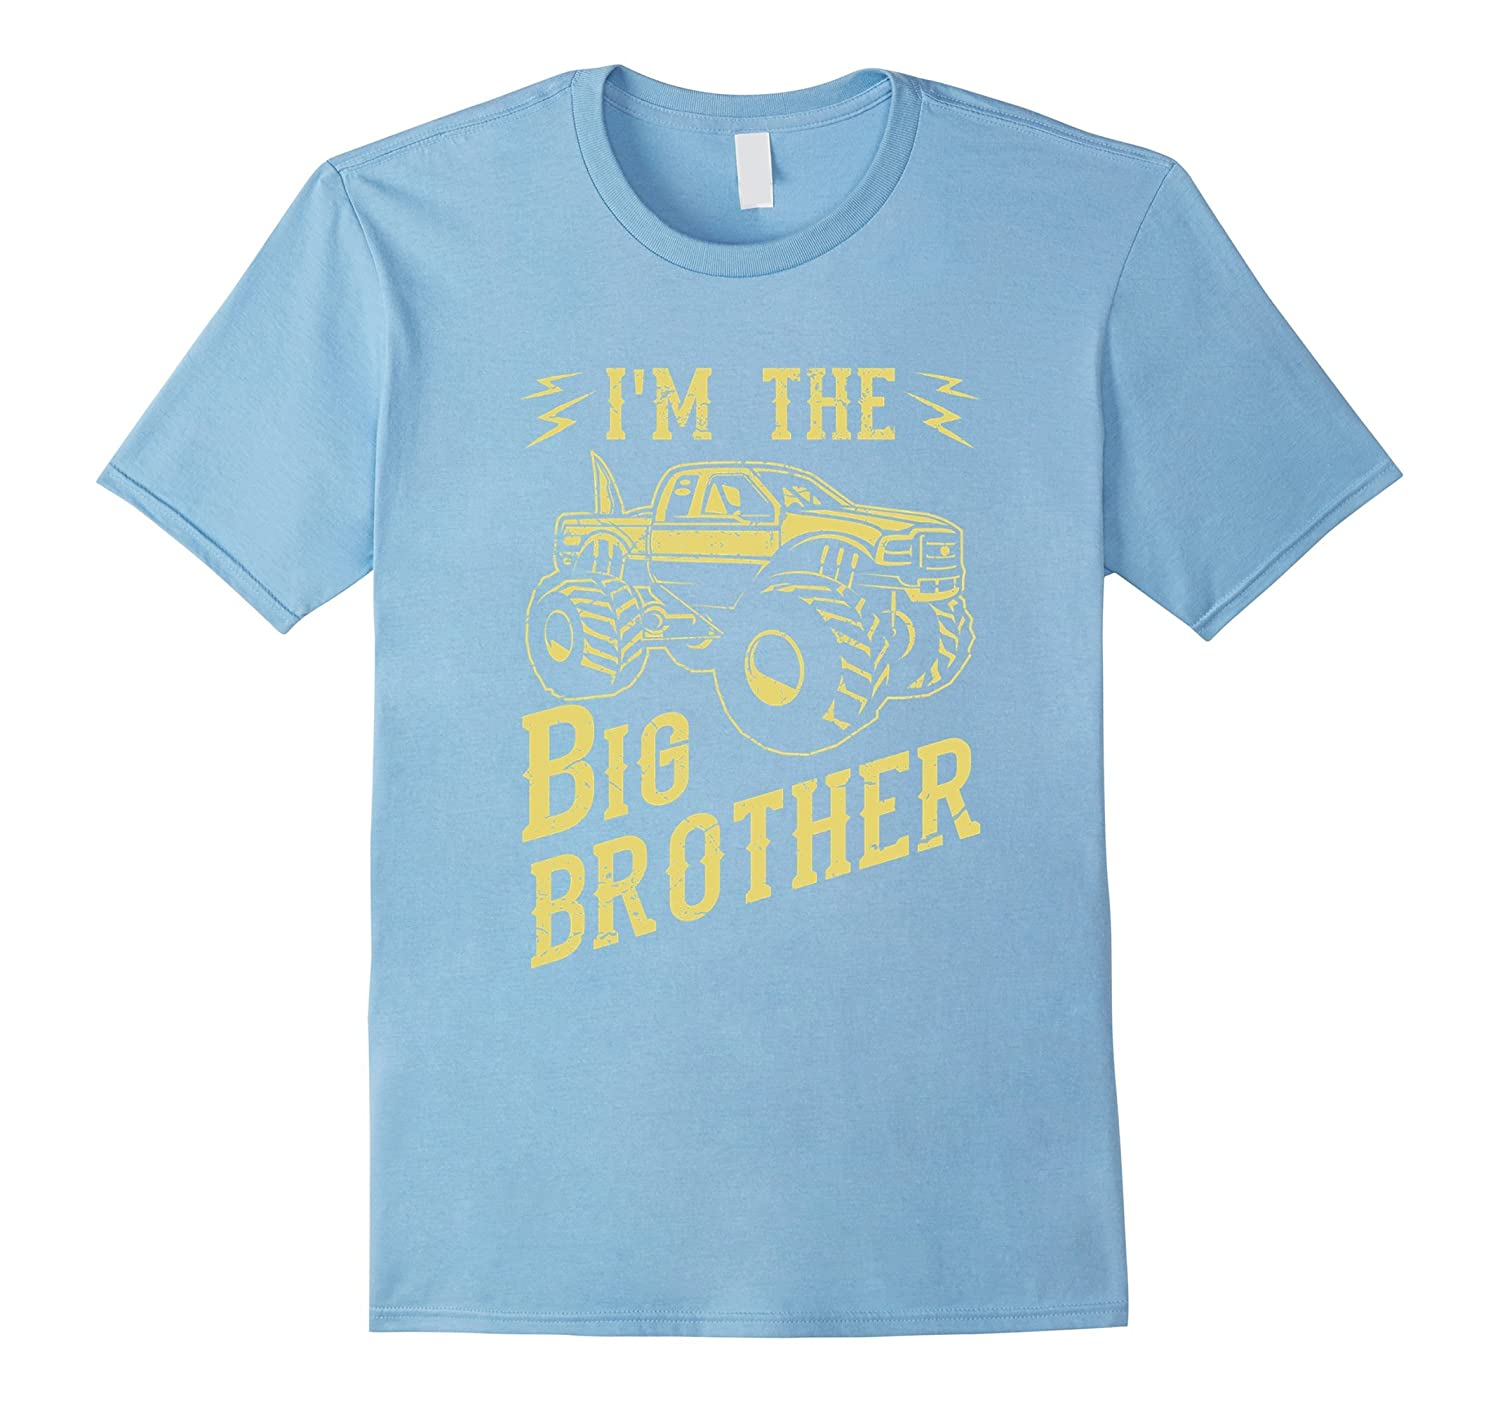 Brother Lover Funny T Shirt Cranberry-Awarplus